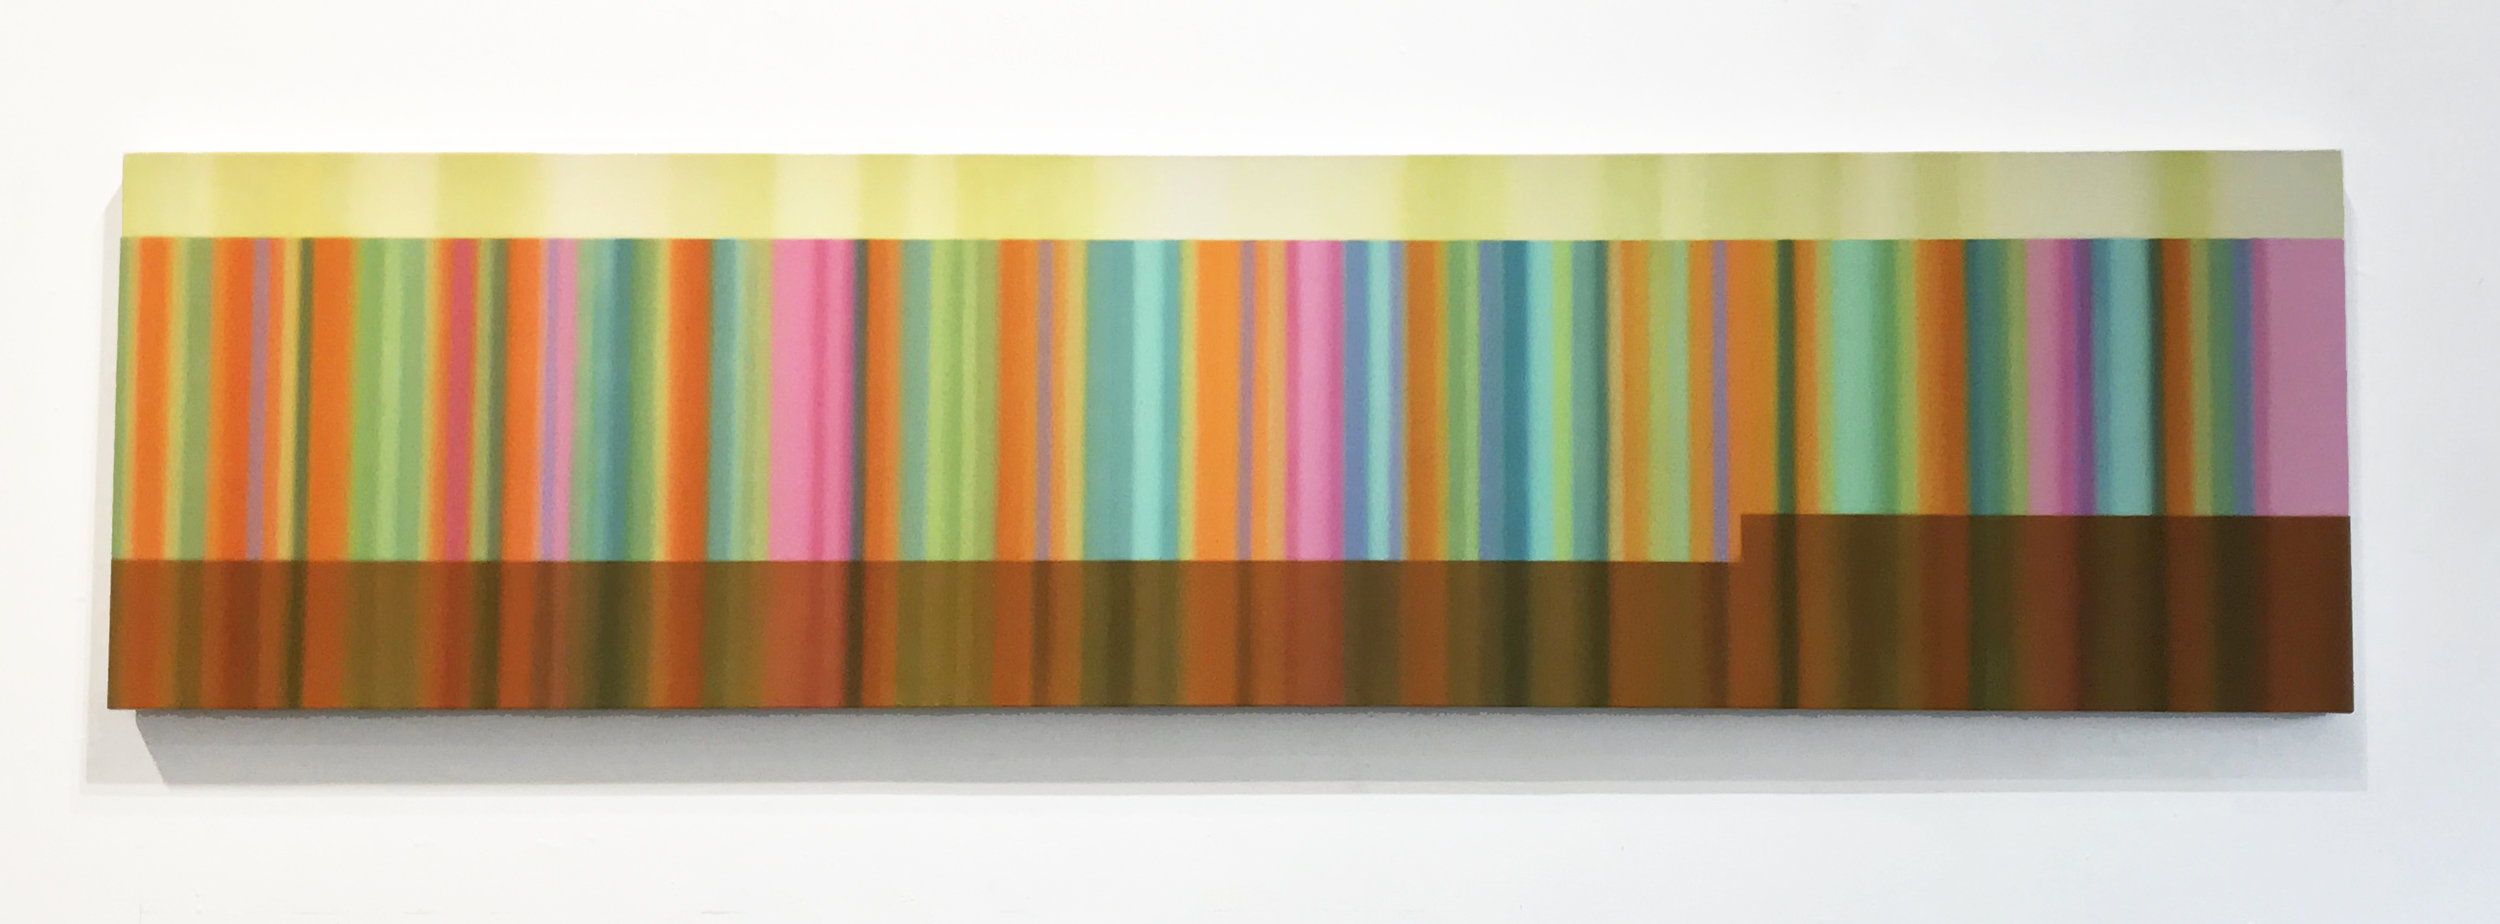 Tim Bavington (Brown 1966)   BNS #2 (Brand New Start) , 2016 Synthetic polymer on canvas Signed, titled and dated in ink on verso 24 x 96 inches Estimate: $10,000/$12,000